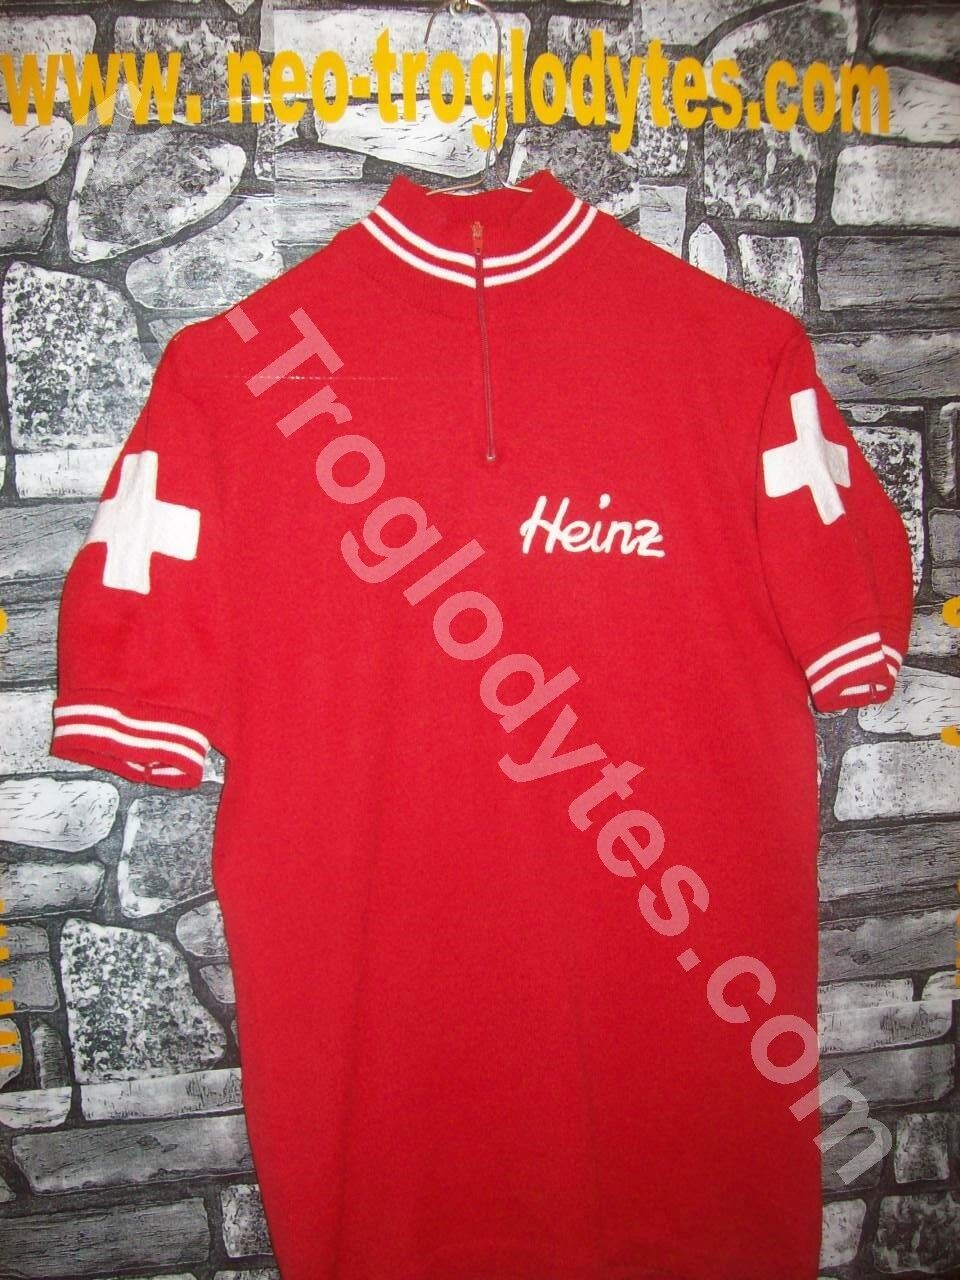 VINTAGE maglia Ciclismo Swiss team '70s cycling jersey bici eroica